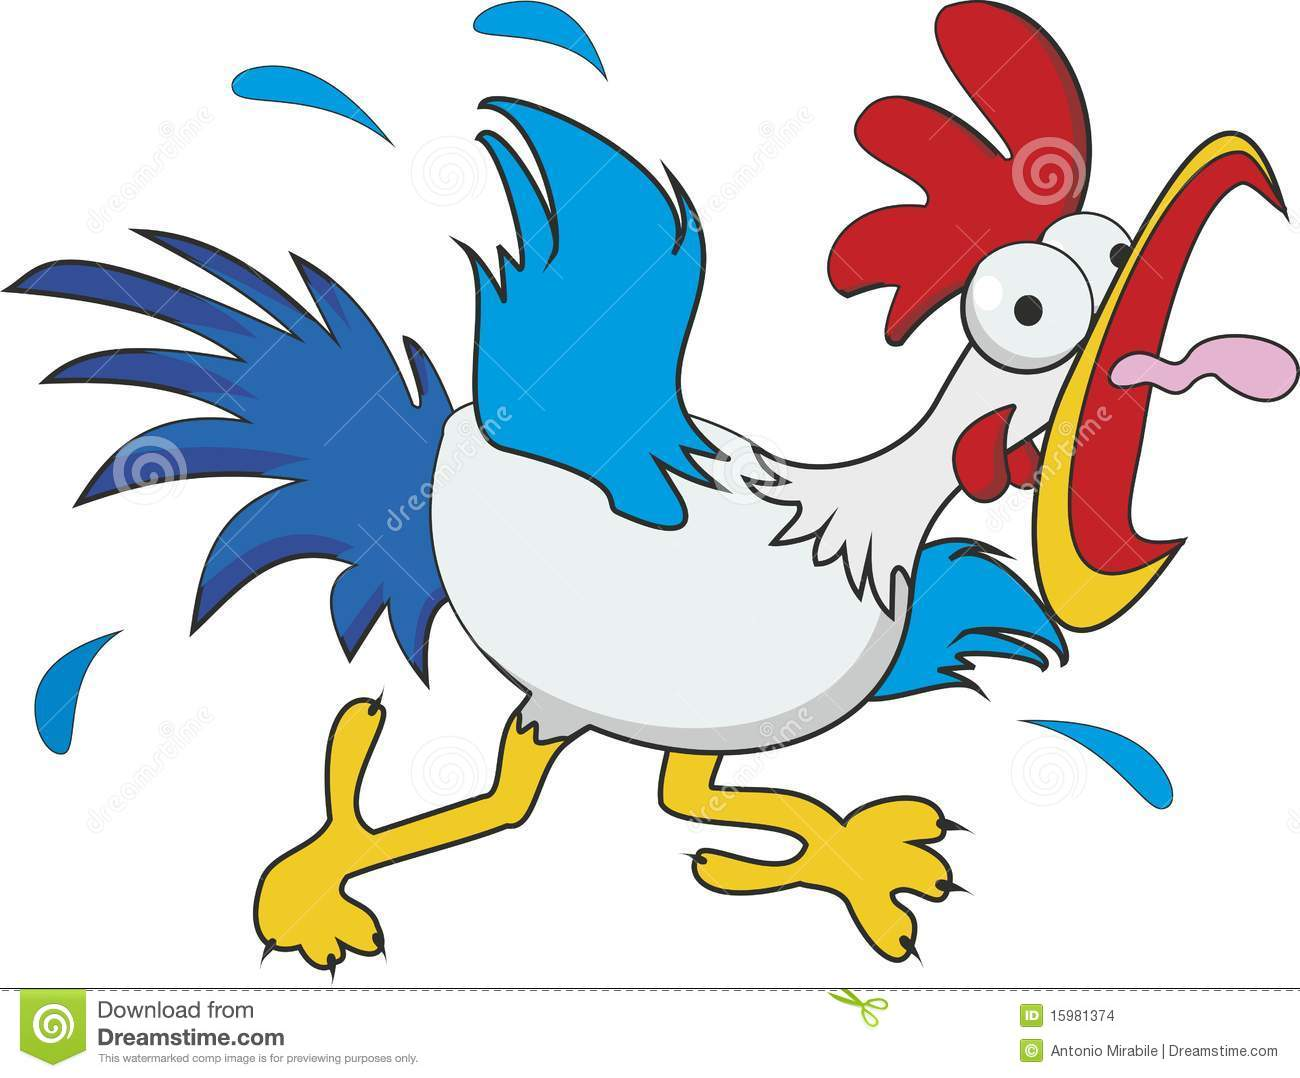 Funny cartoon chicken isolated on white background.